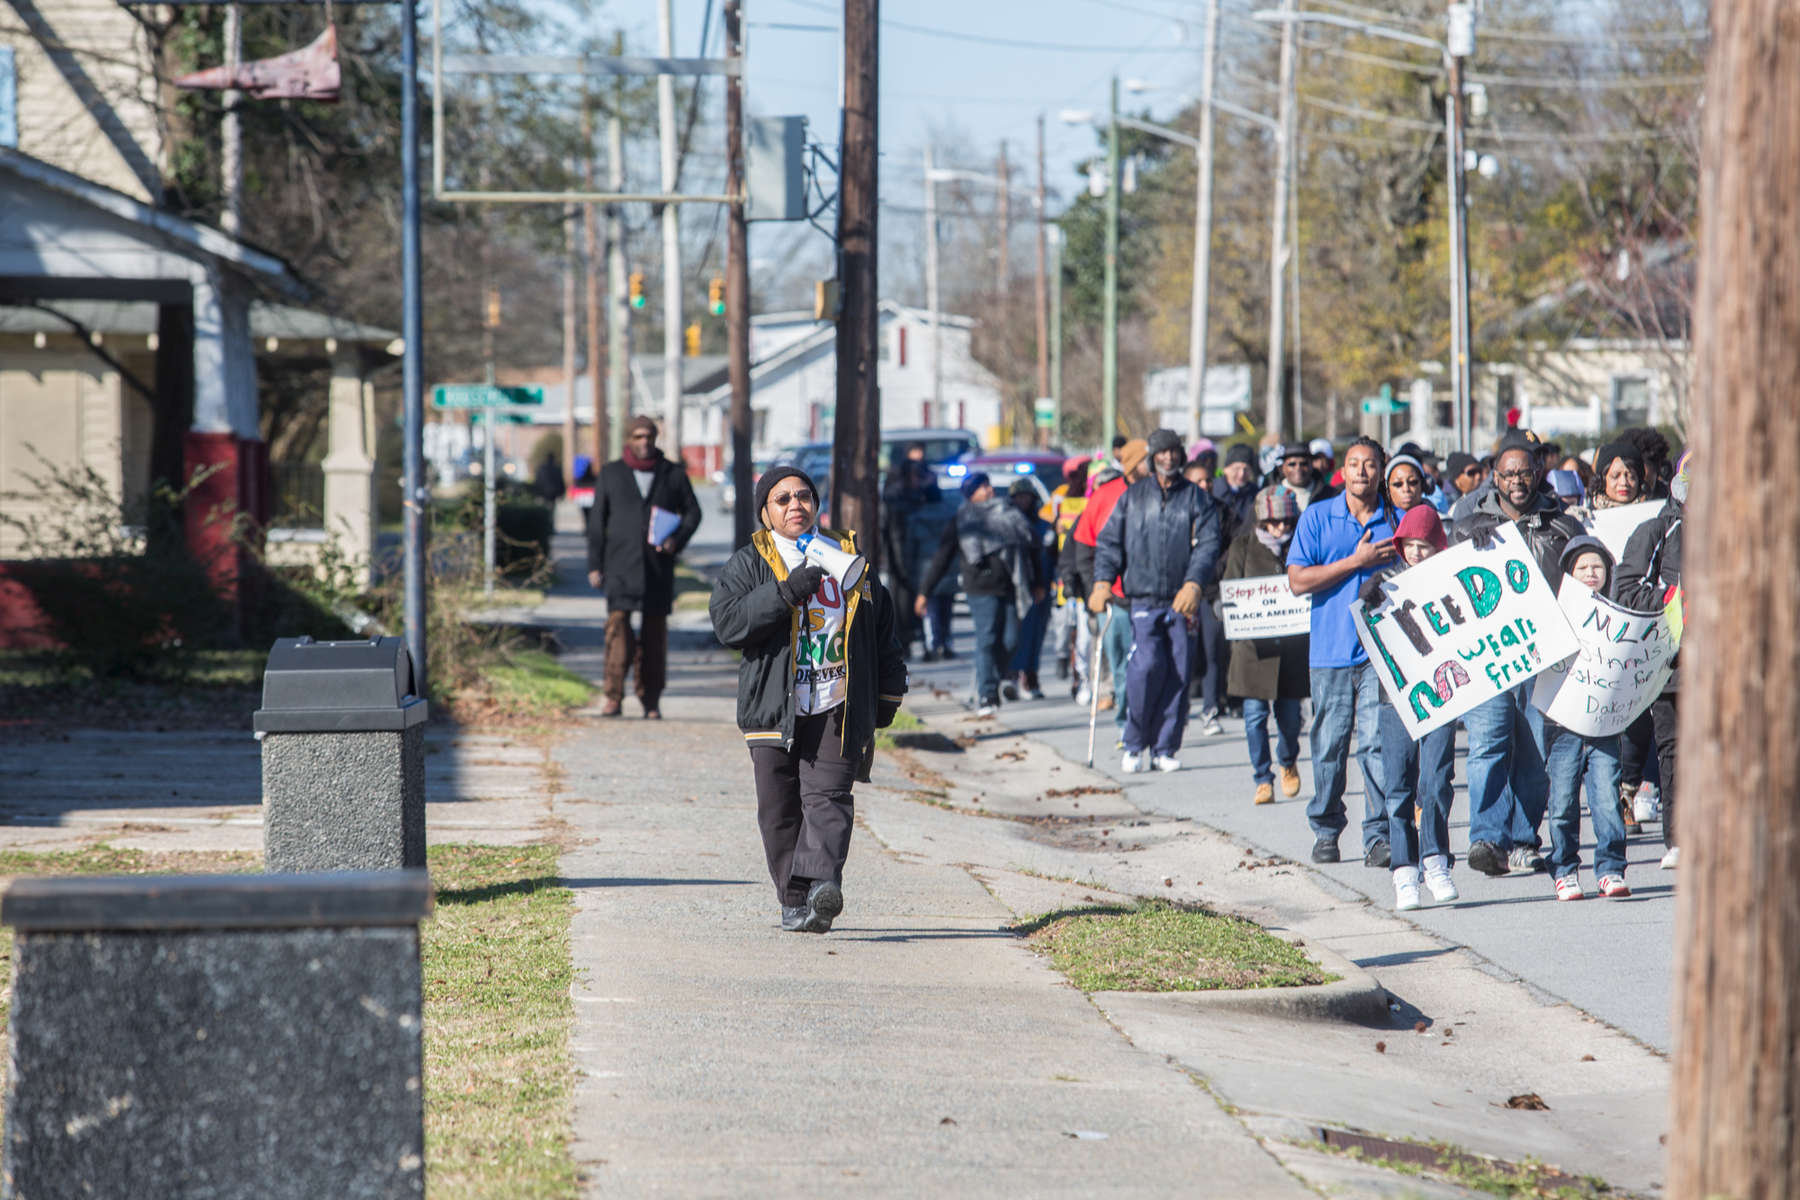 First Place | Multiple PhotosJoe Pellegrino, The Daily ReflectorDemonstrators march up West 5th street as part of the Martin Luther King Day march and rally on Jan. 18, 2016.